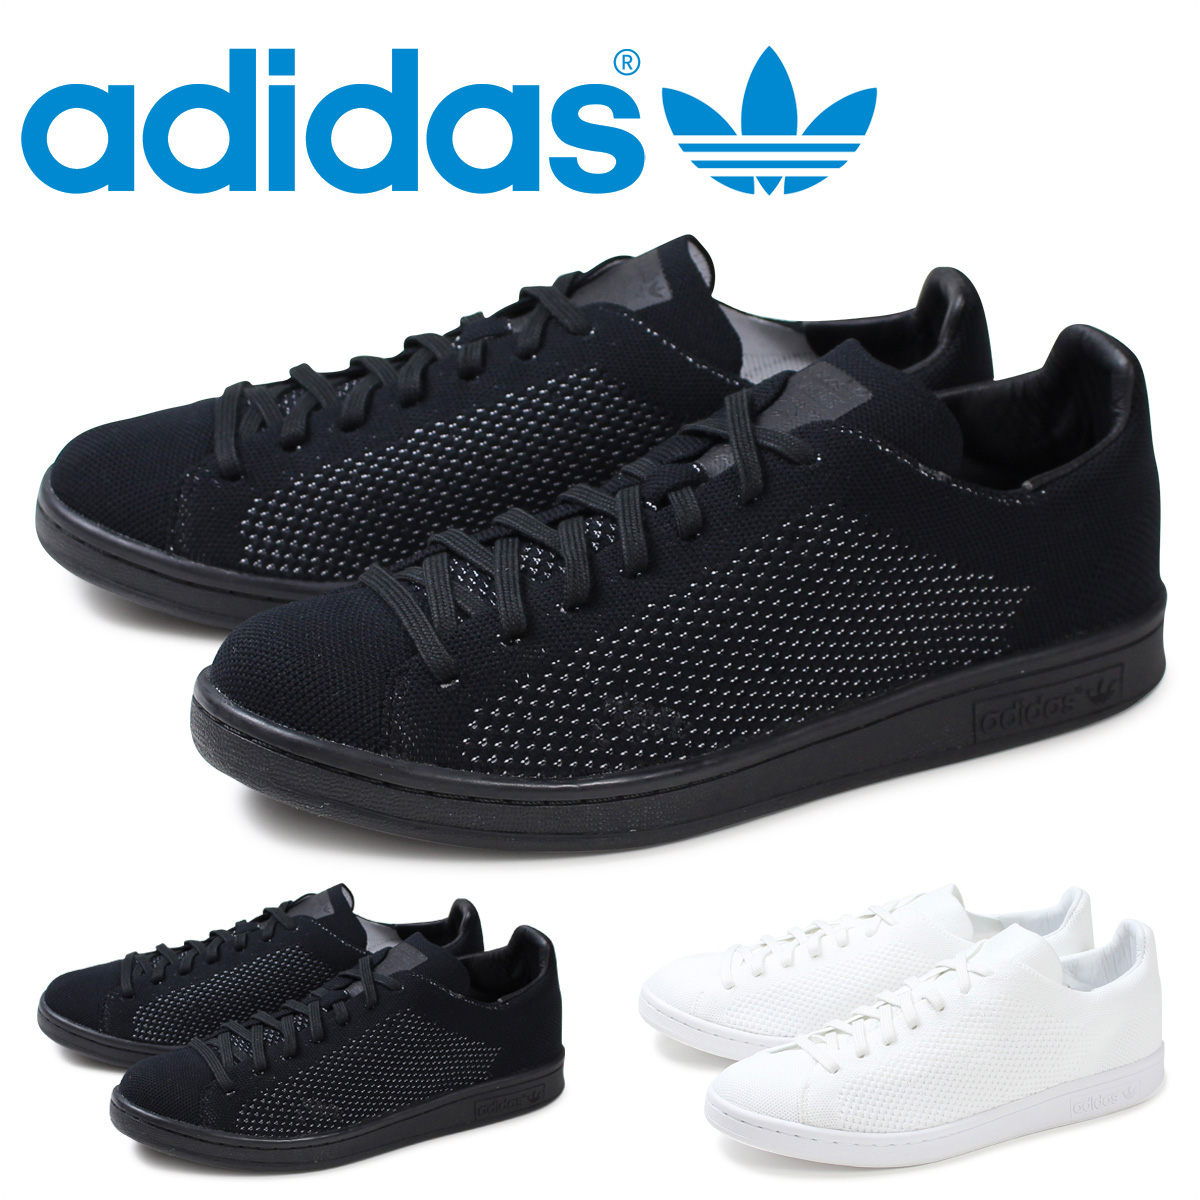 SneaK Online Shop | Rakuten Global Market: Adidas sneakers mens Stan Smith adidas STAN SMITH PRIMEKNIT BB S80065 shoes white black [10/13 new in stock]